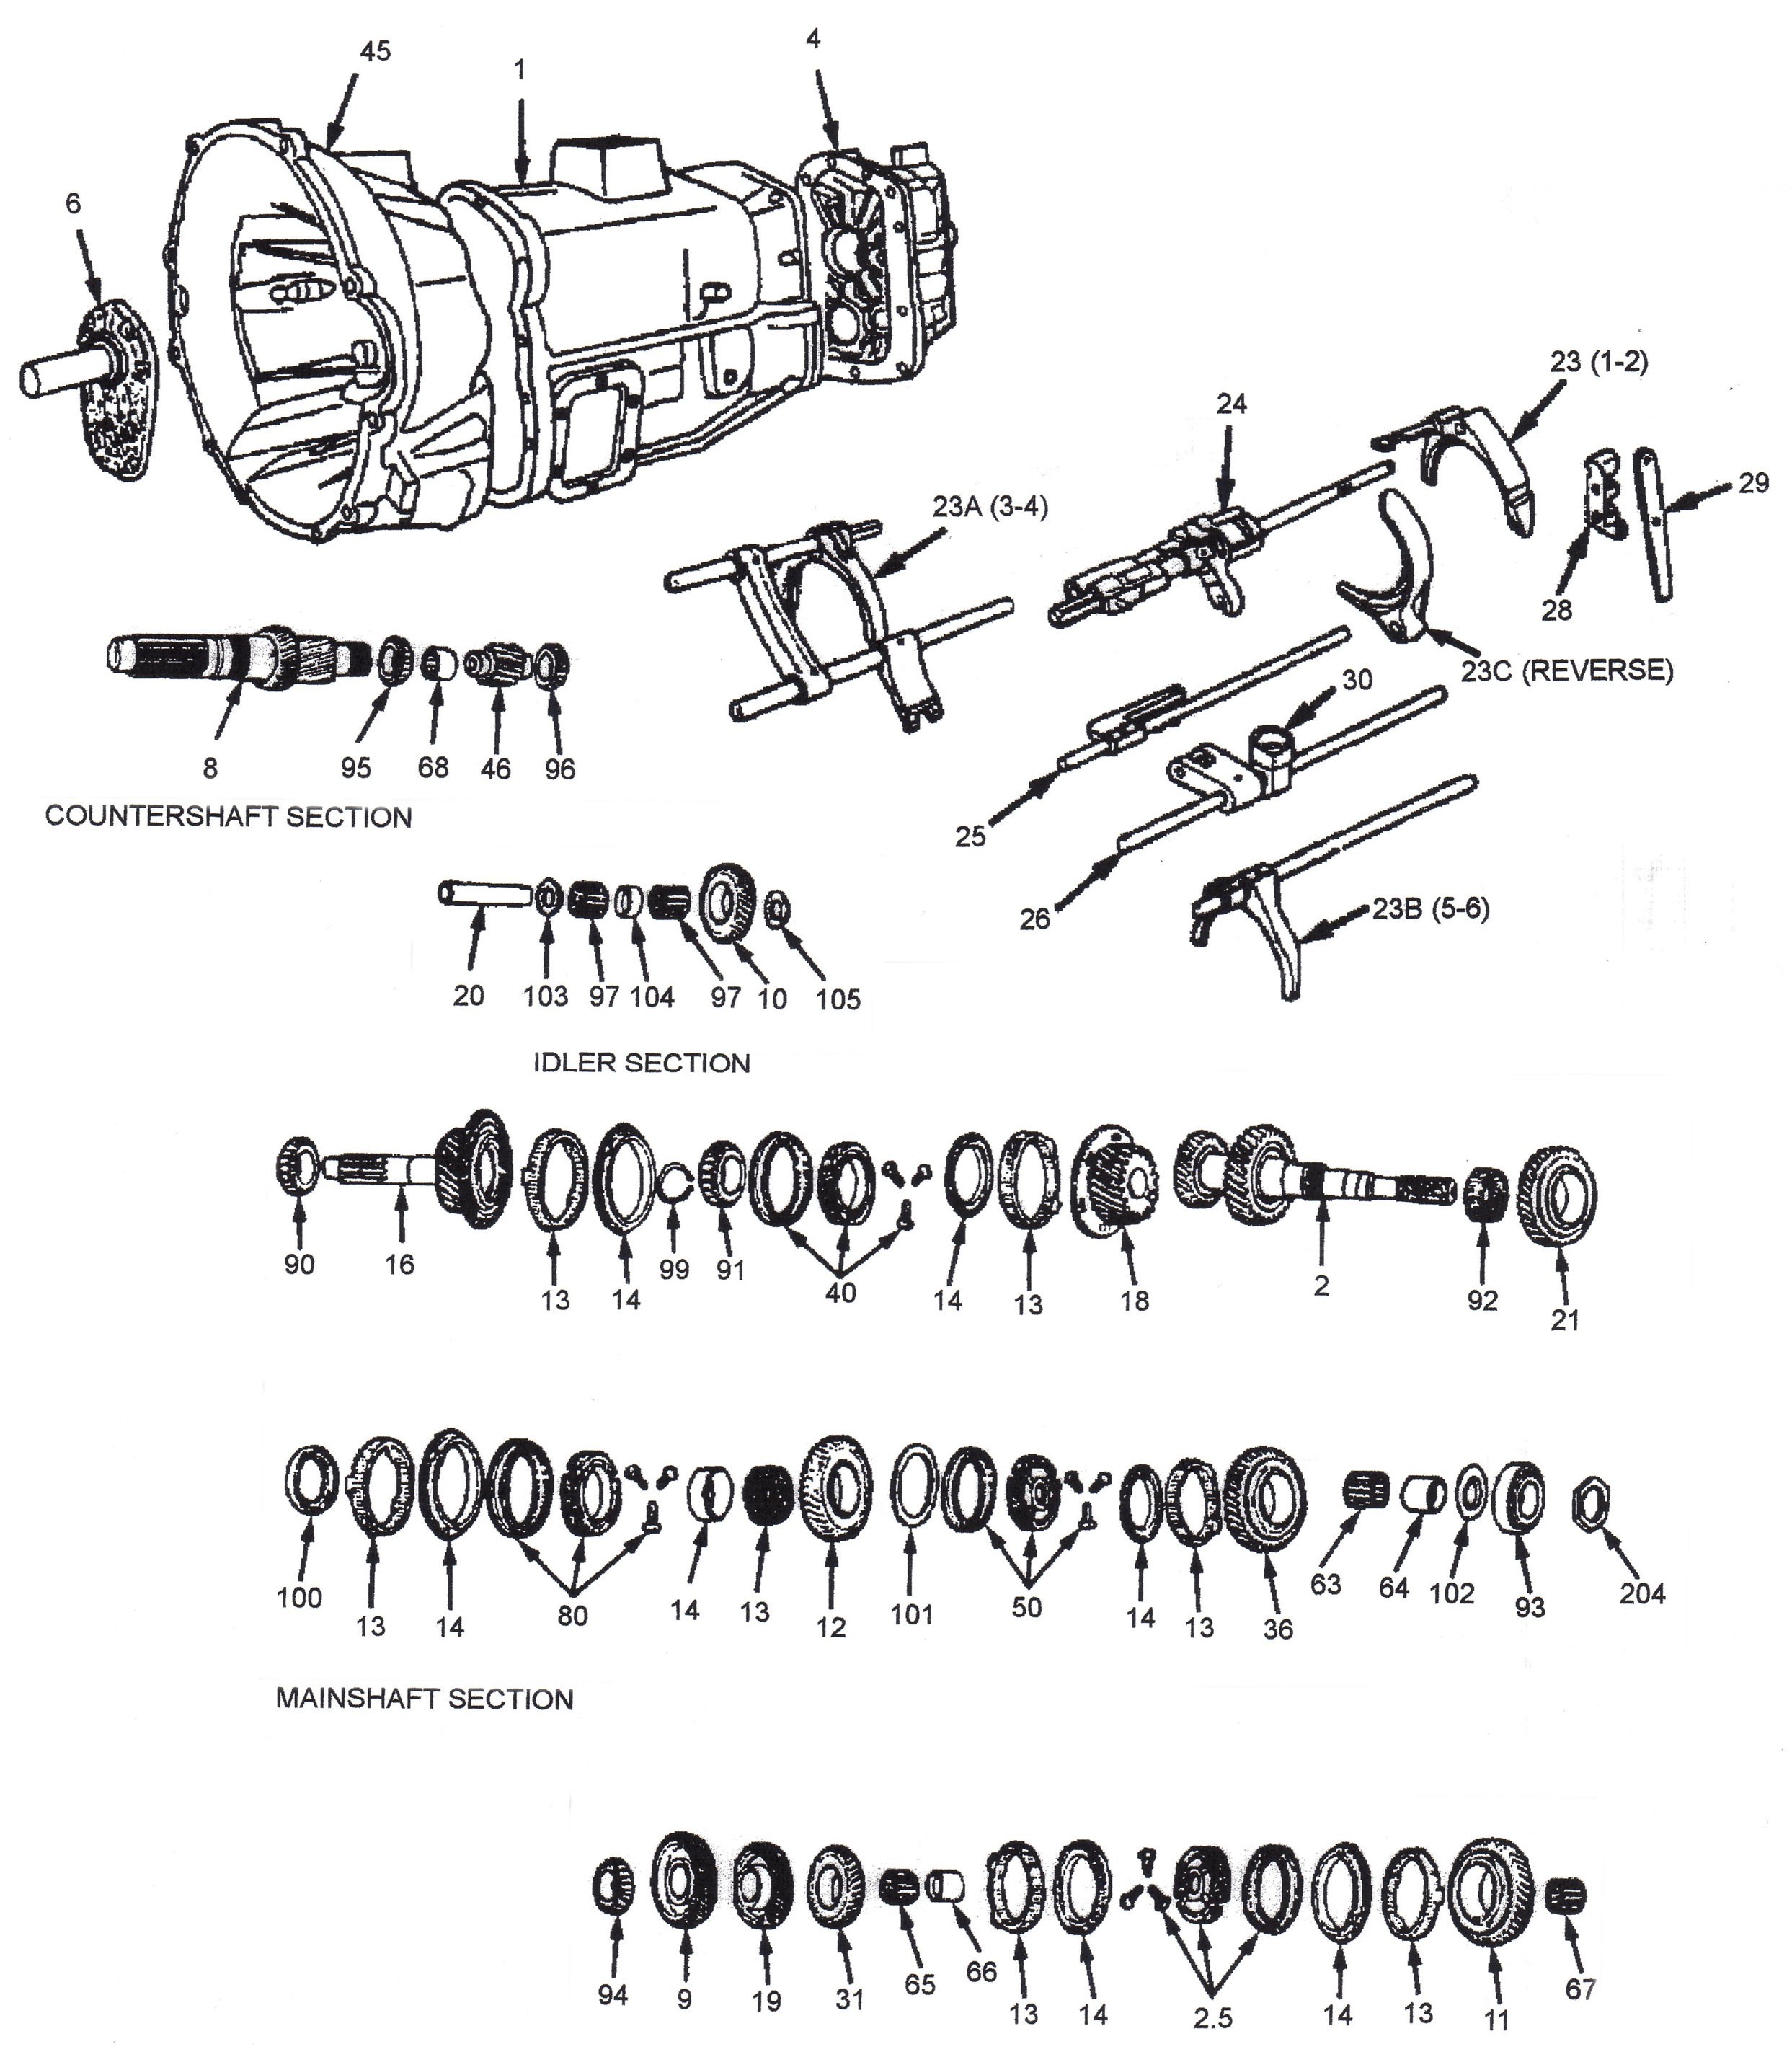 Manual Gearbox Diagram Nv5600 Dodge Transmission Six Speed Manual Transmission Rebuild Kits Of Manual Gearbox Diagram